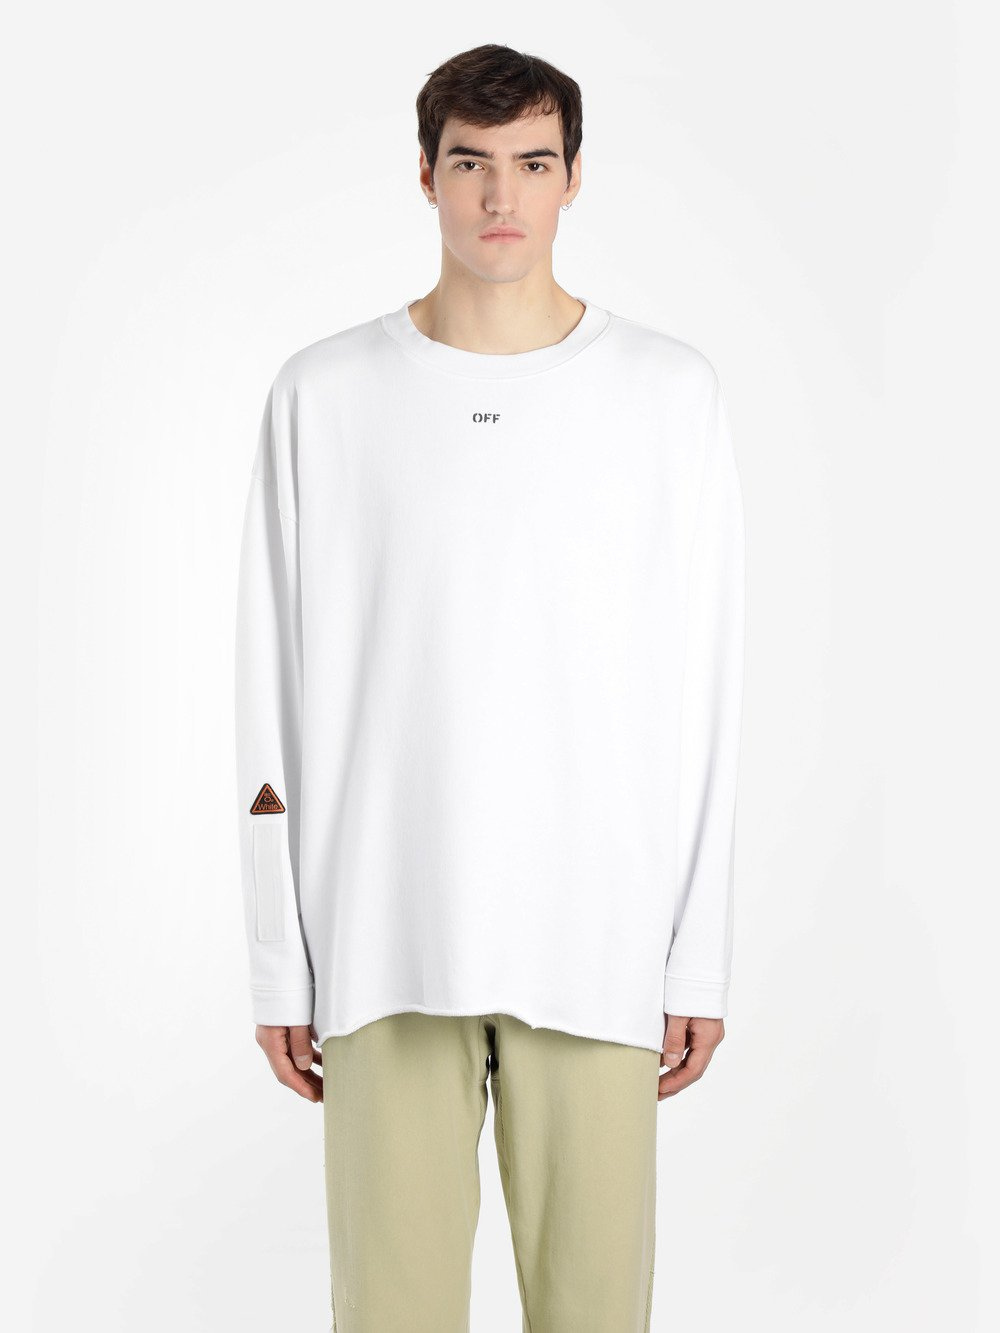 OFF WHITE C/O VIRGIL ABLOH MEN'S WHITE CREWNECK SWEATER WITH LATERAL TAPE EMBROIDERIES